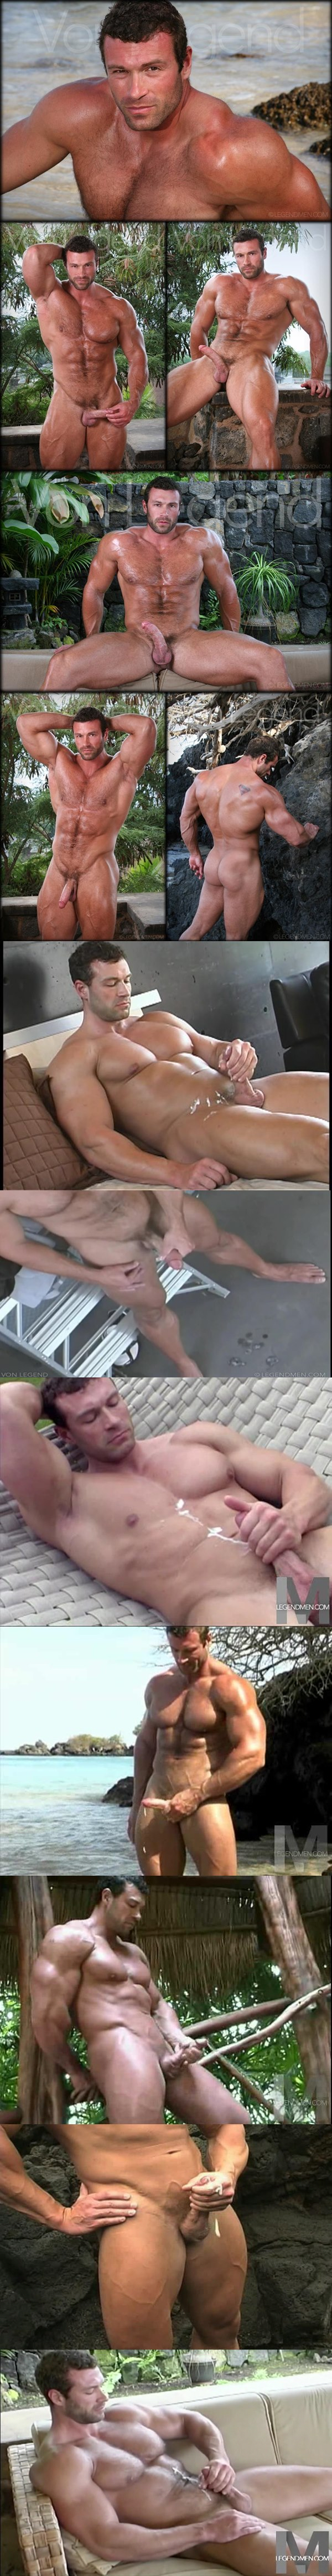 Sexy Muscular Von Legend shoots his thick mikly loads of cums in 7 cumshot collections at Legendmen 02